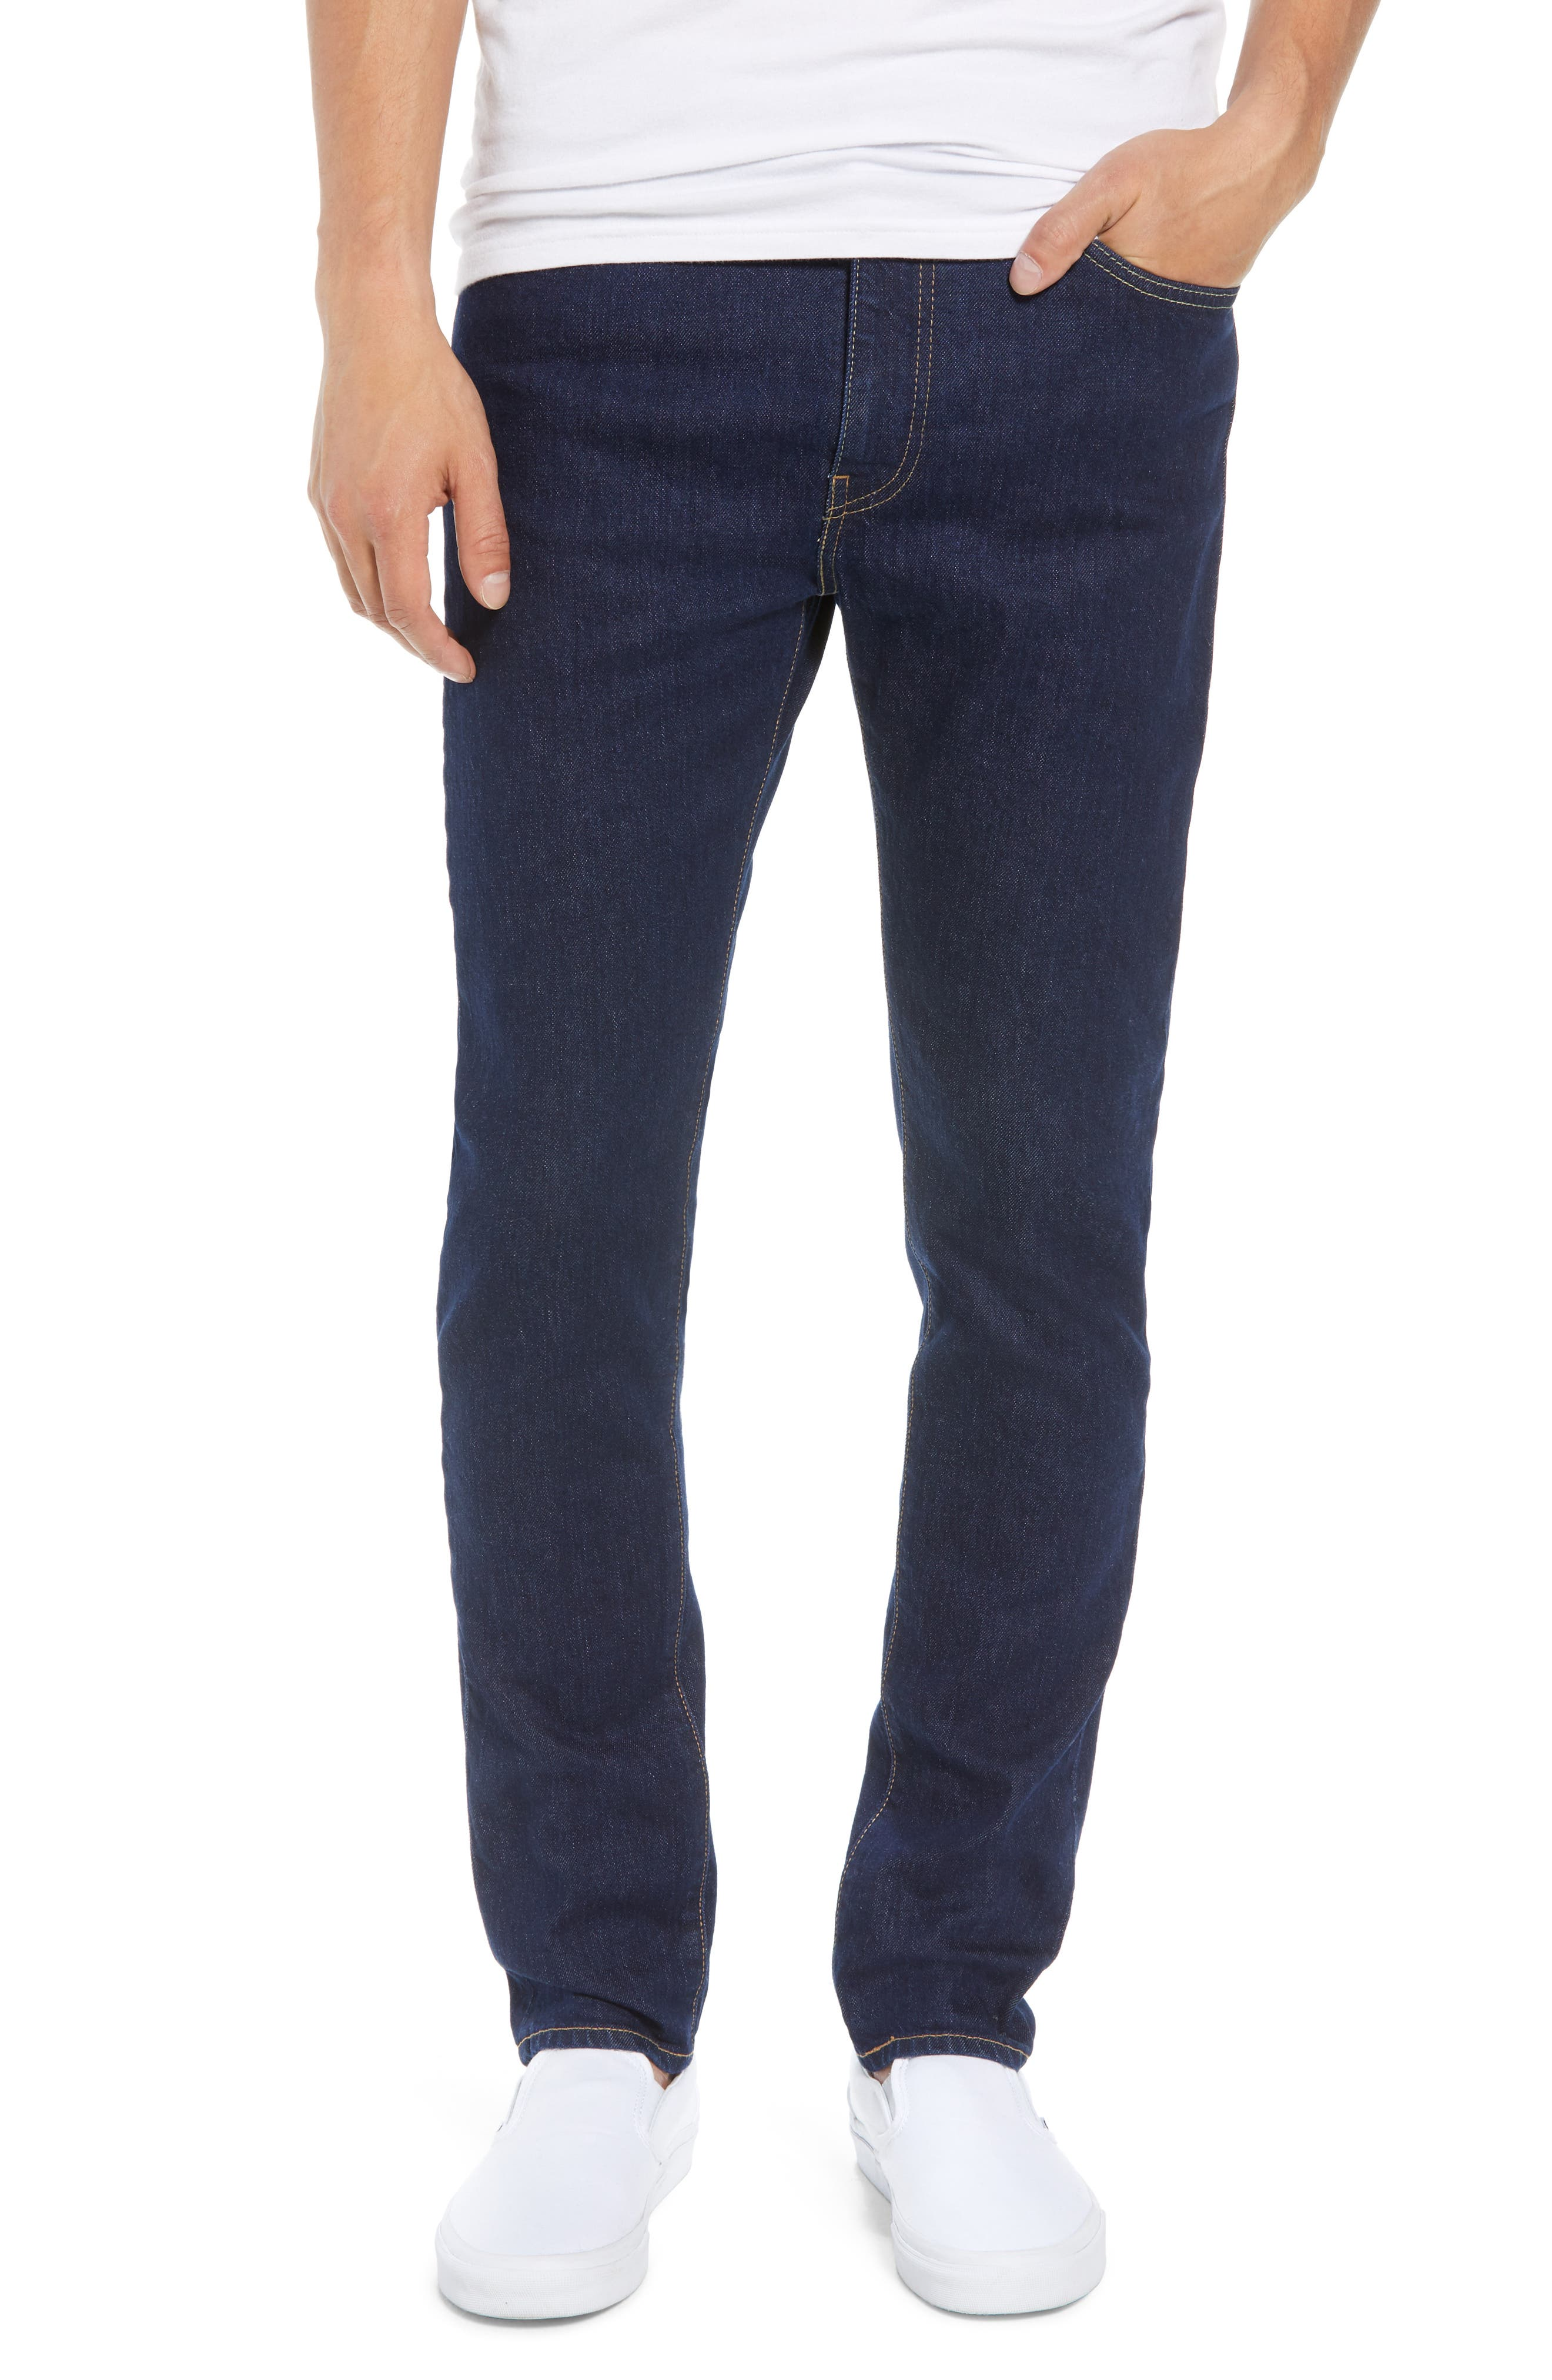 510<sup>™</sup> Skinny Fit Jeans,                         Main,                         color, CHAIN RINSE